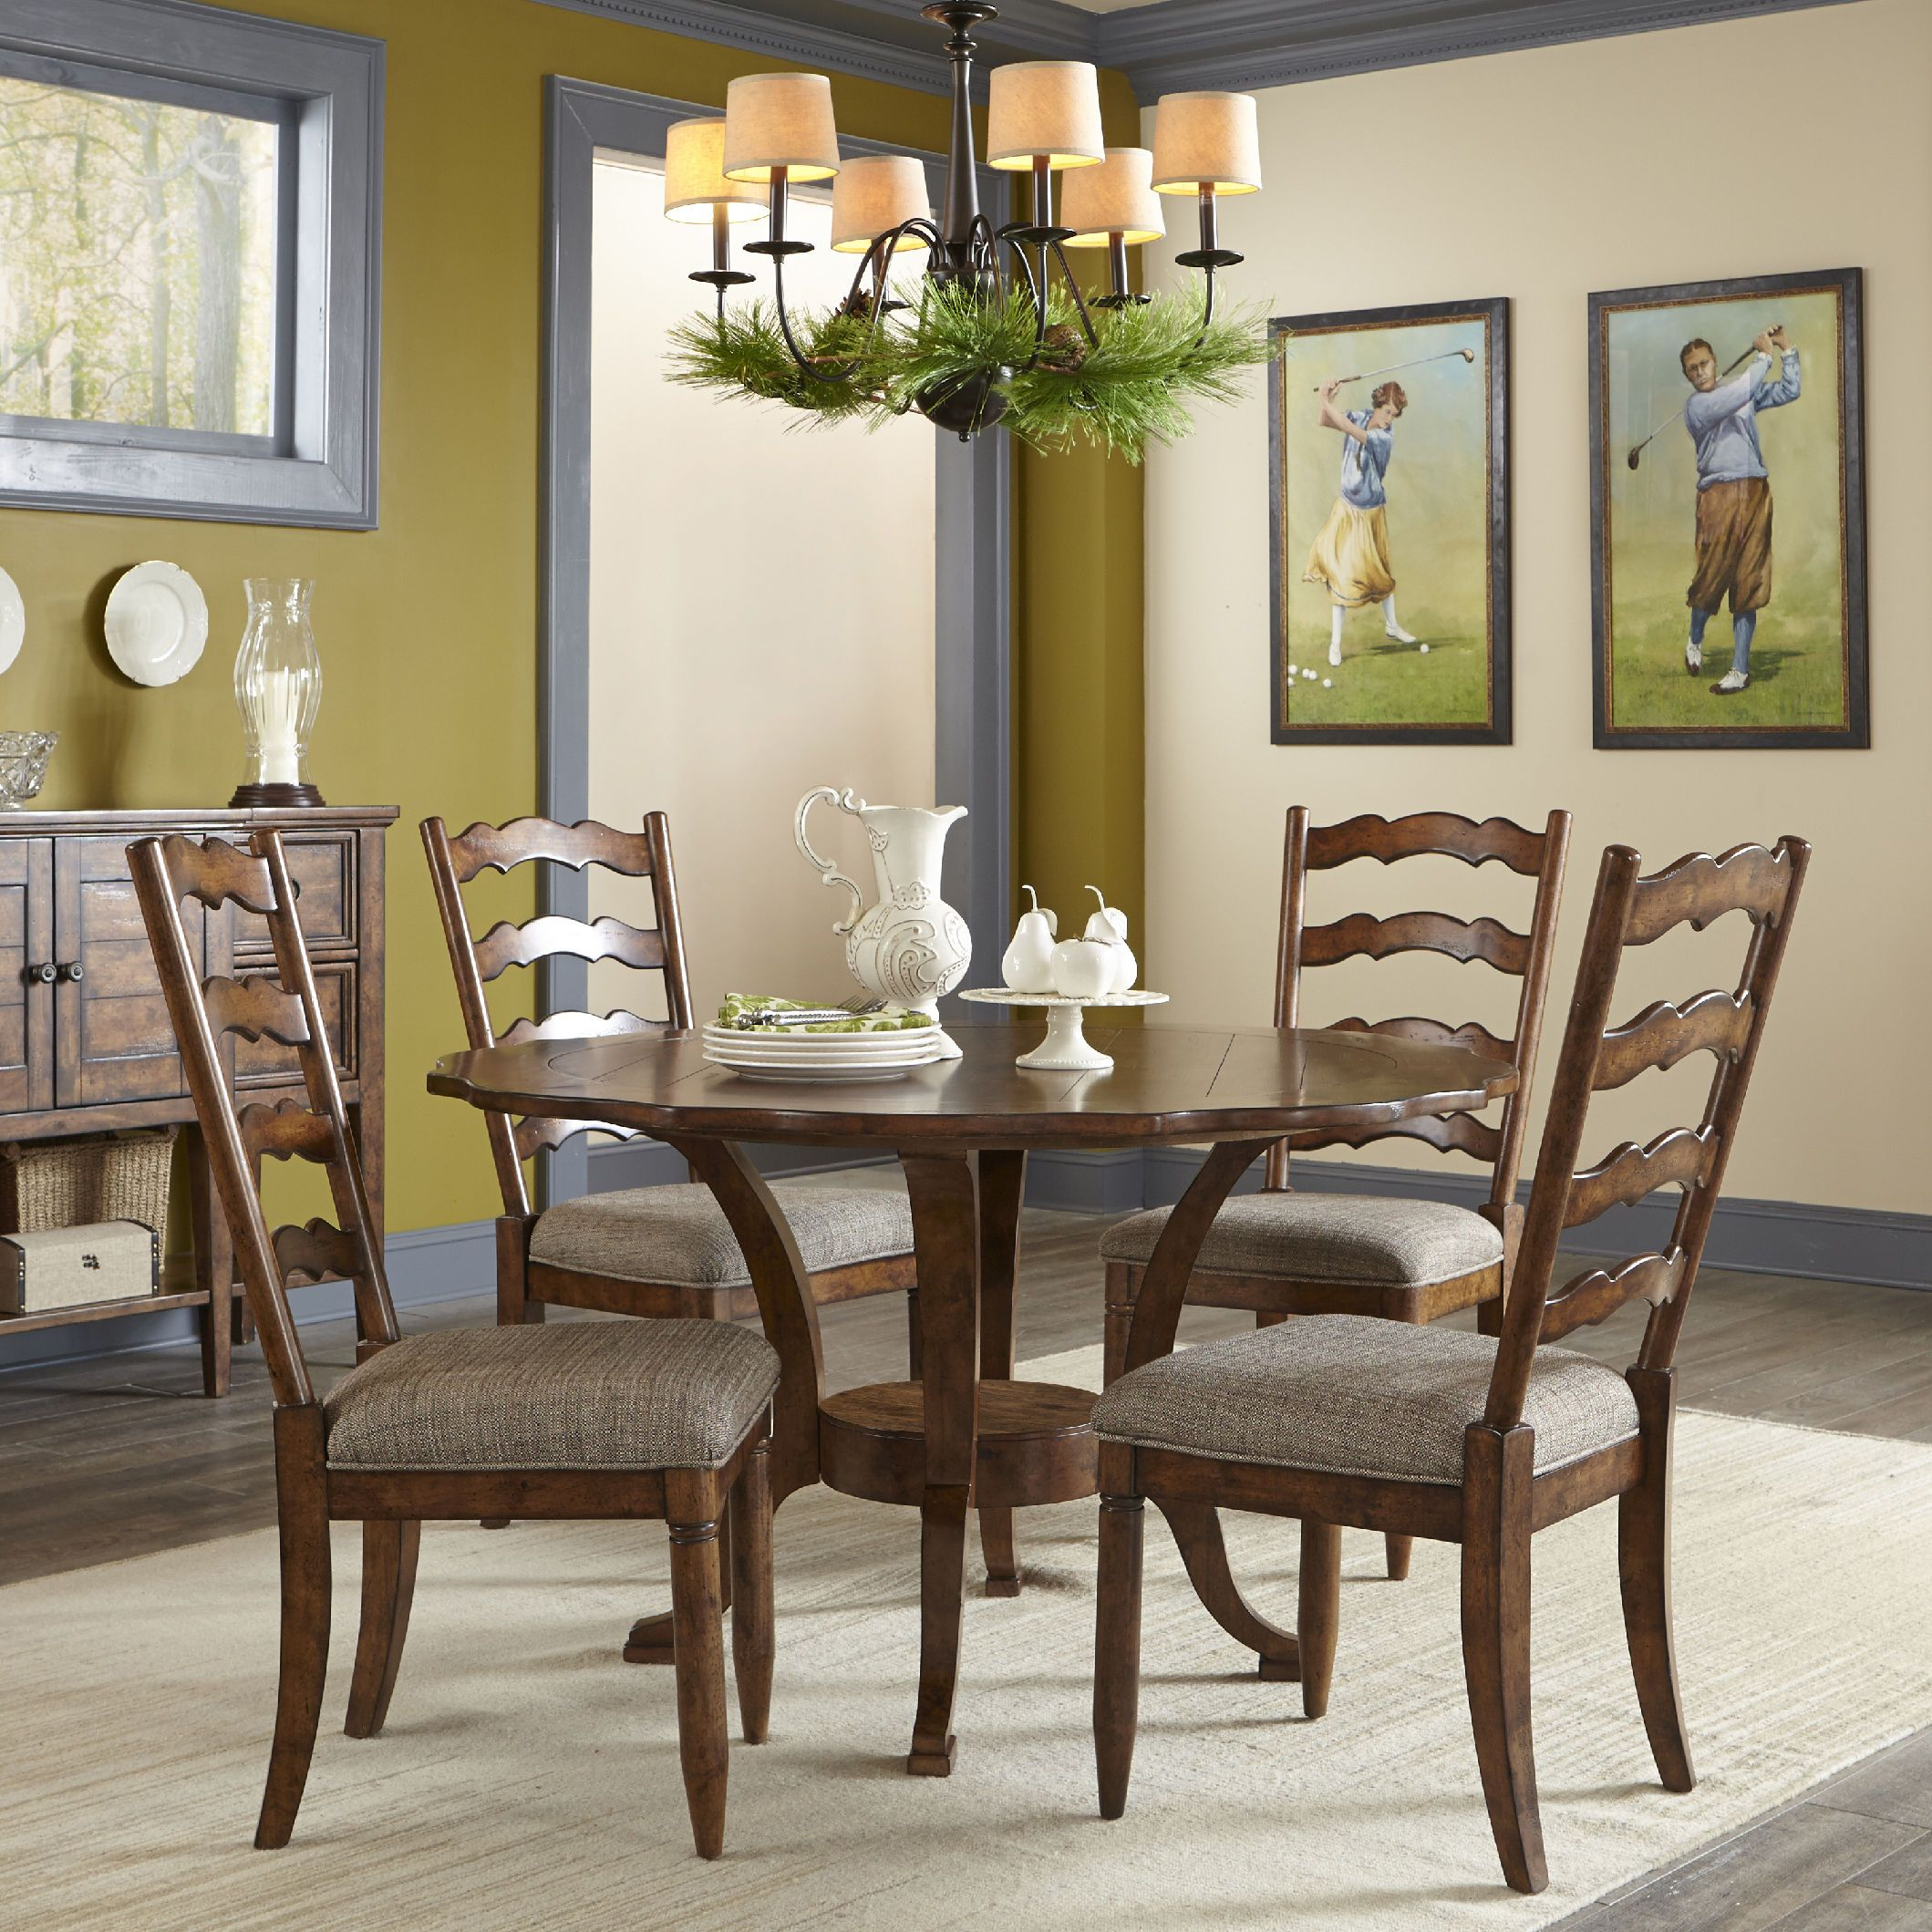 Named After A Small Town In North Carolina, The Southern Pines Collection  Offers An Irresistible